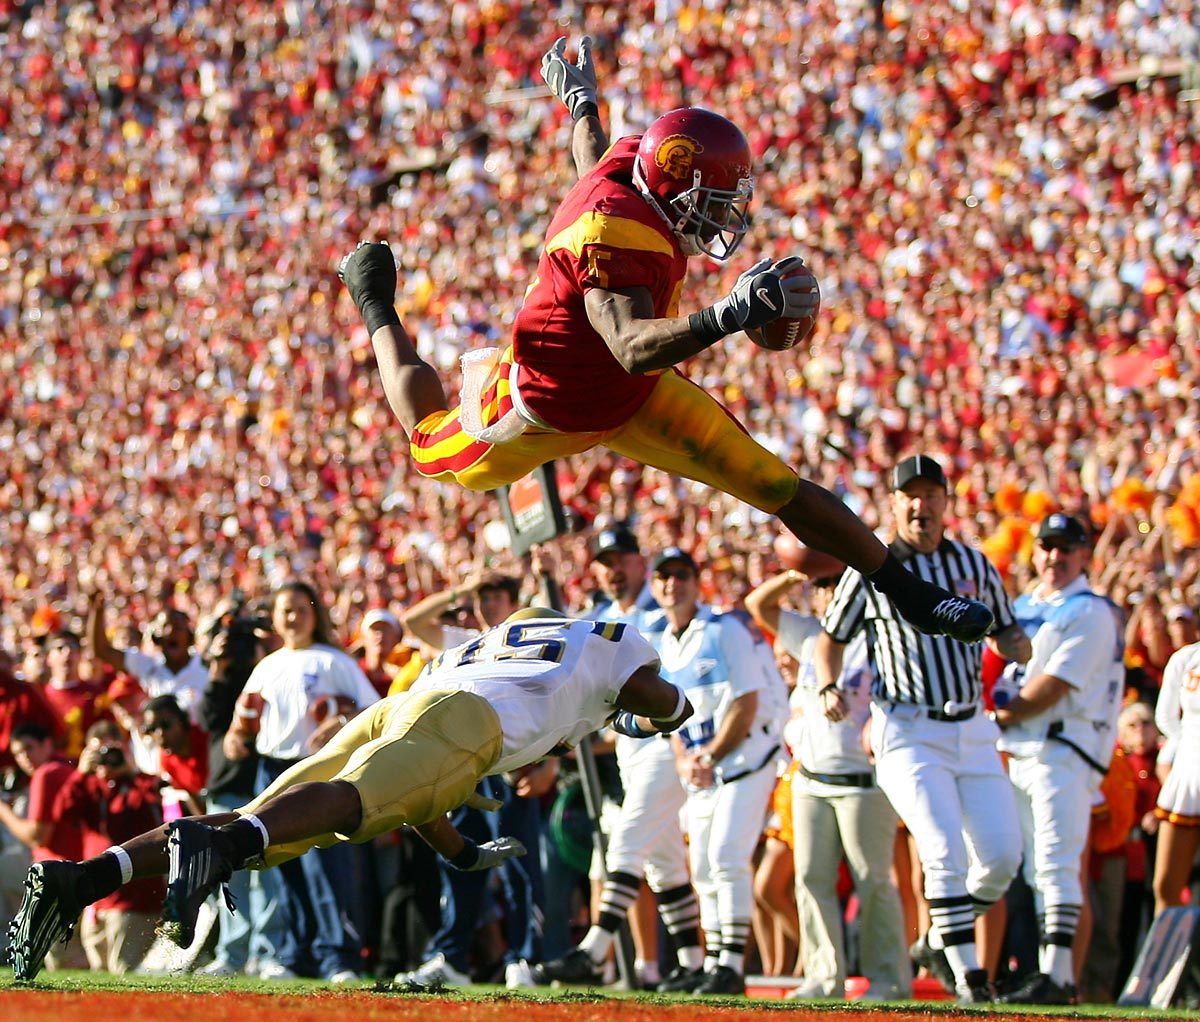 USC vs. UCLA, Dec. 3, 2005 | USC running back Reggie Bush jump over UCLA defender Marcus Cassel and into the end zone for a touchdown. Bush's spectacular season earned him the 2005 Heisman Trophy, but the award was later stripped because Bush had received illegal benefits during his time with the Trojans.